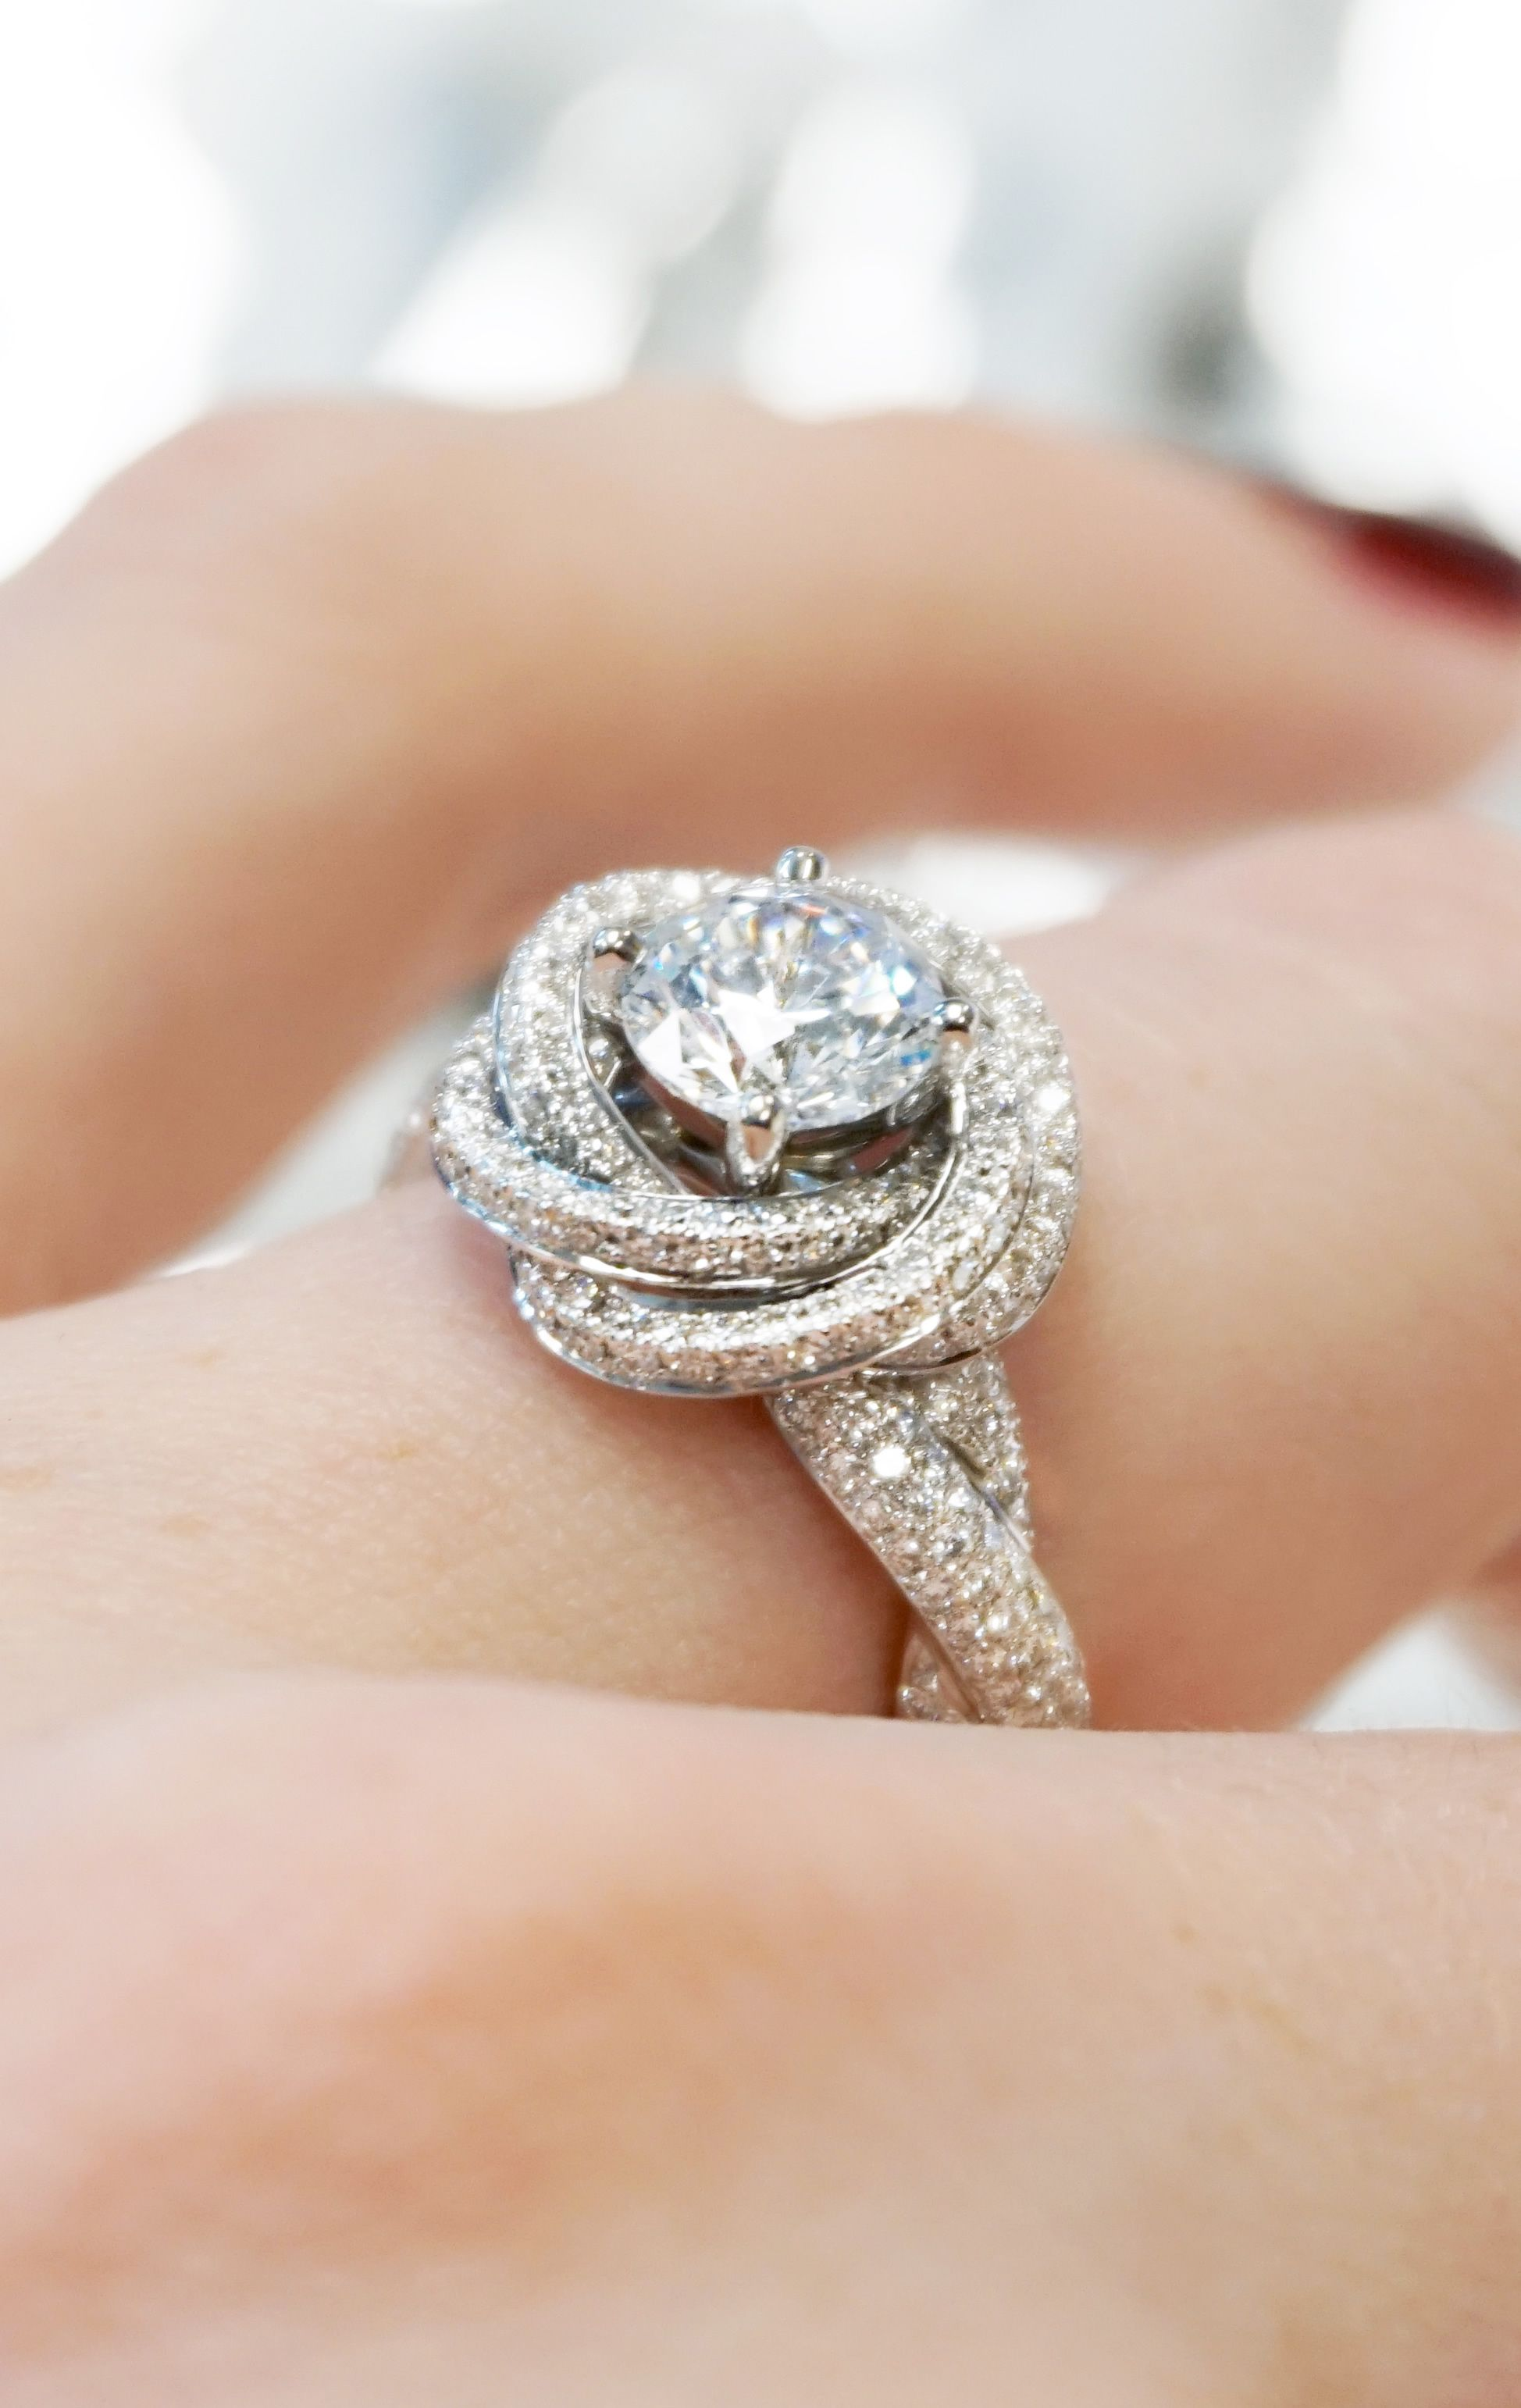 excellent ring free pictures design own beautiful of wedding jewellery your online